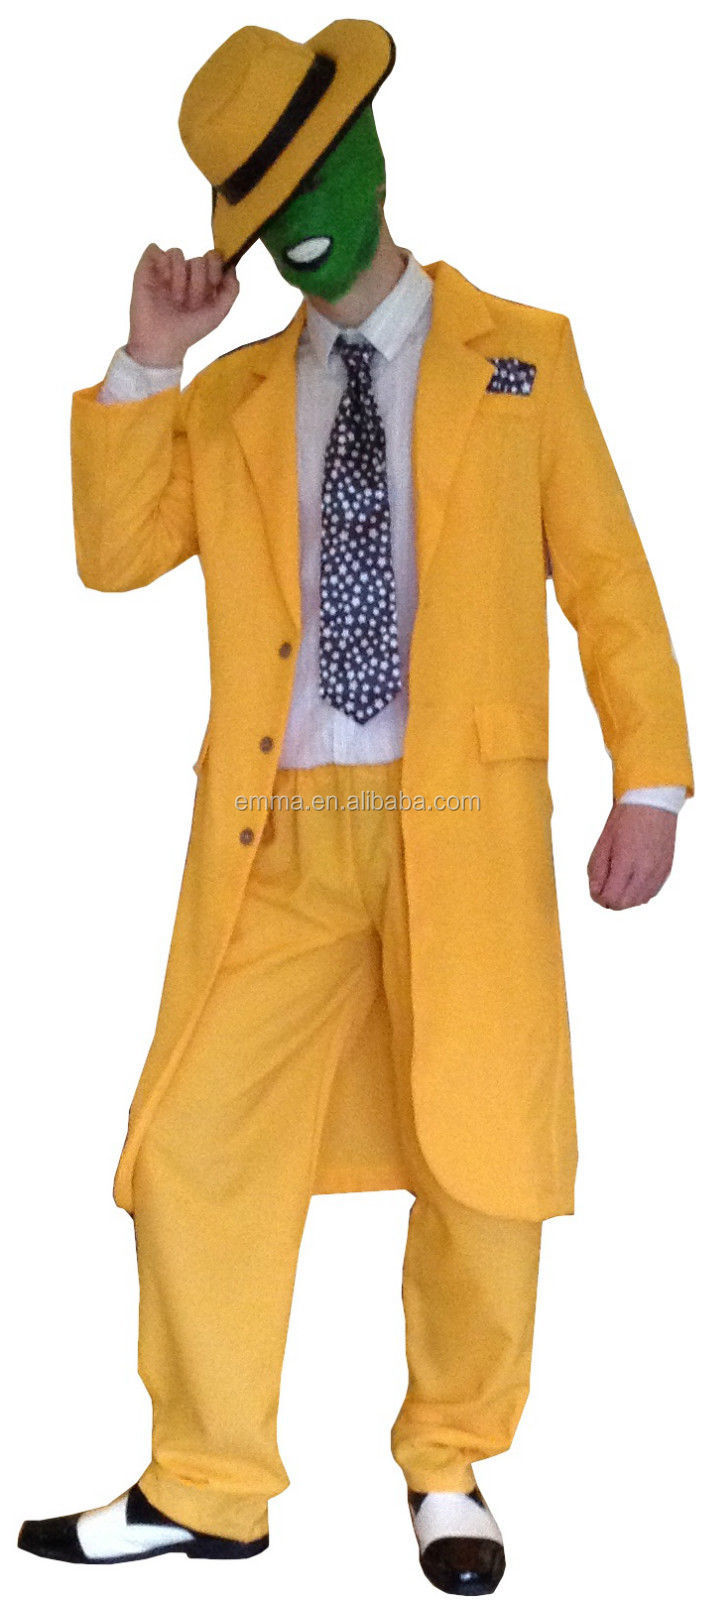 90 s FANTAISIE ROBE JAUNE HOMME GANGSTER ZOOT COSTUME LE MASQUE JIM CARREY COSTUME BM493